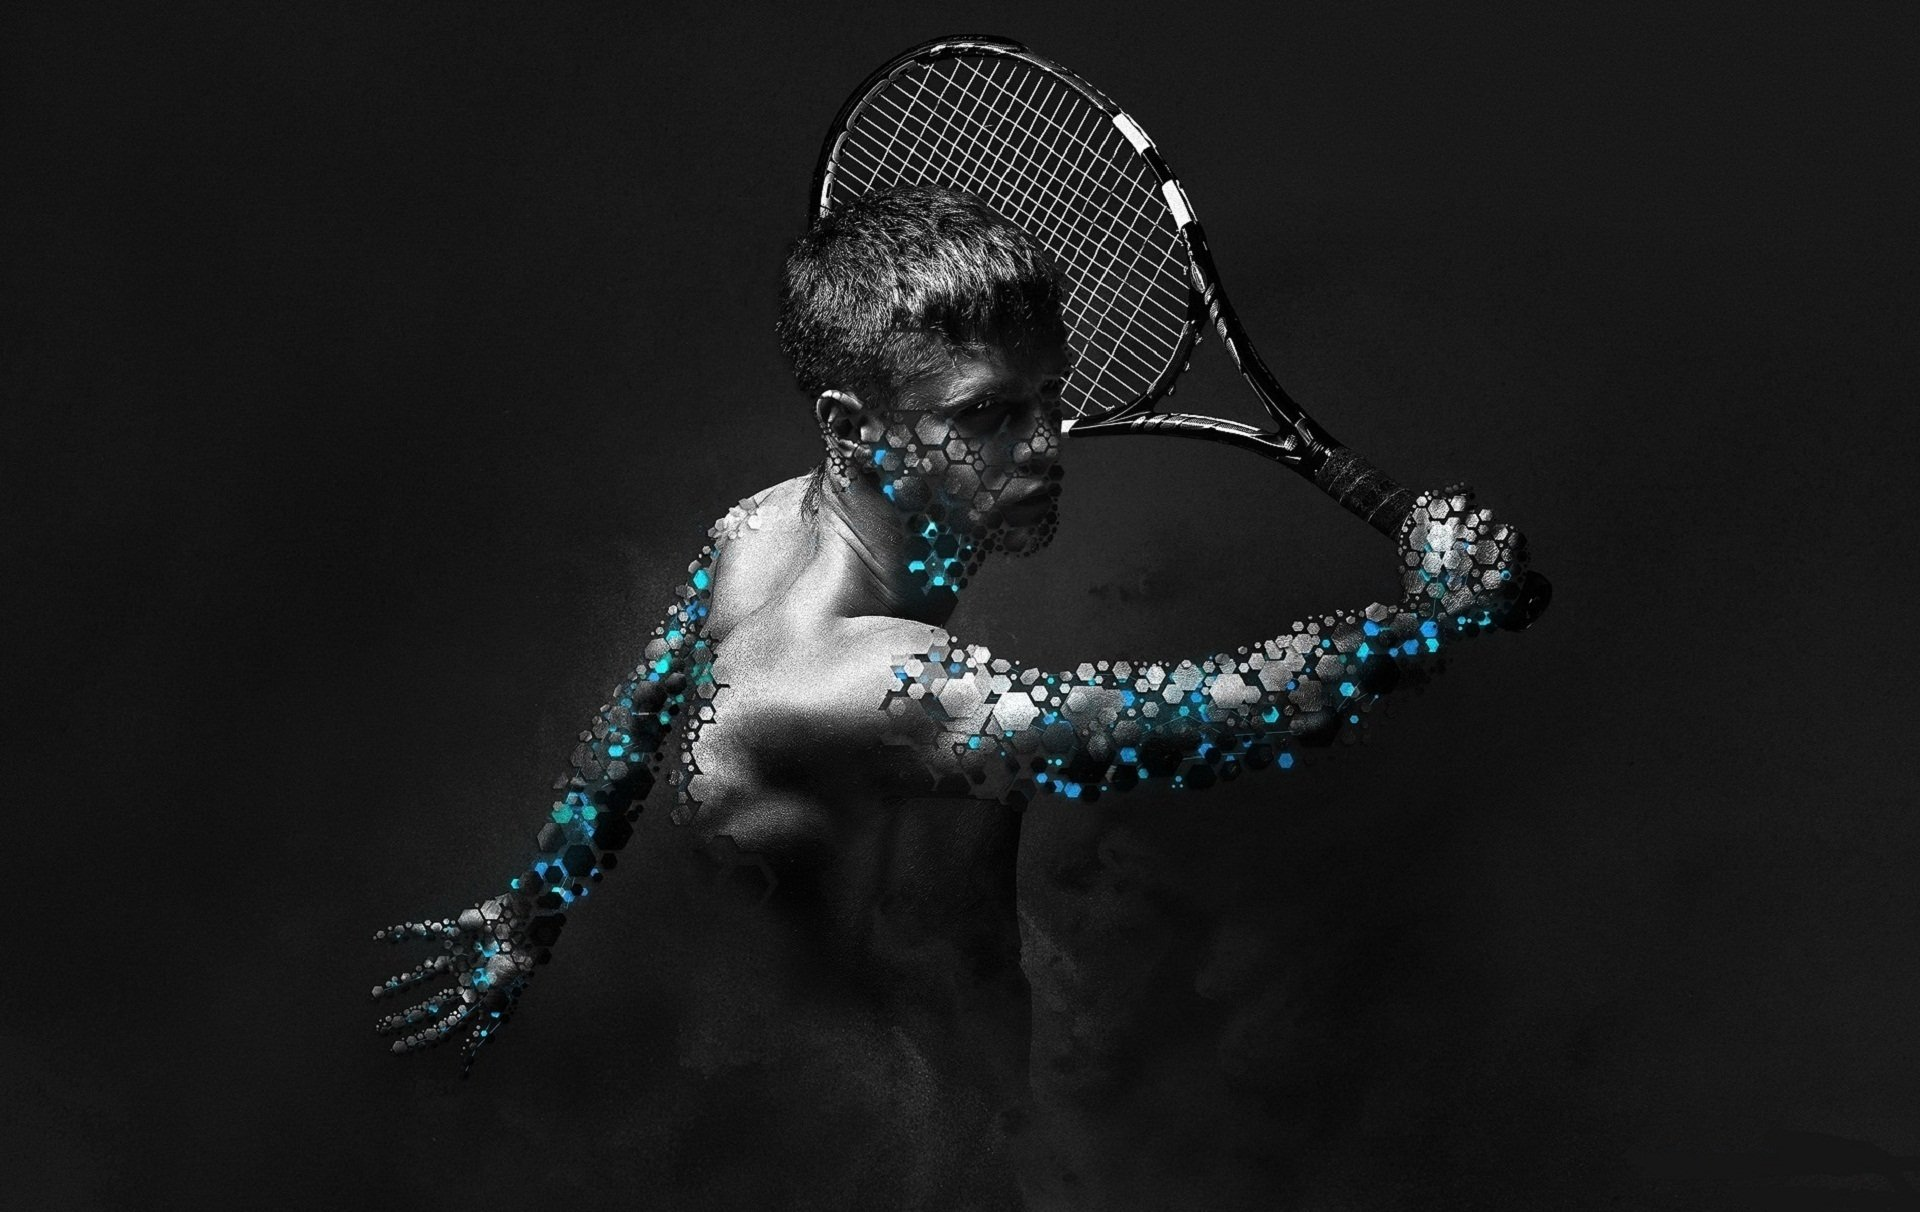 Sports - Artistic  Manipulation Photography Fantasy Wallpaper